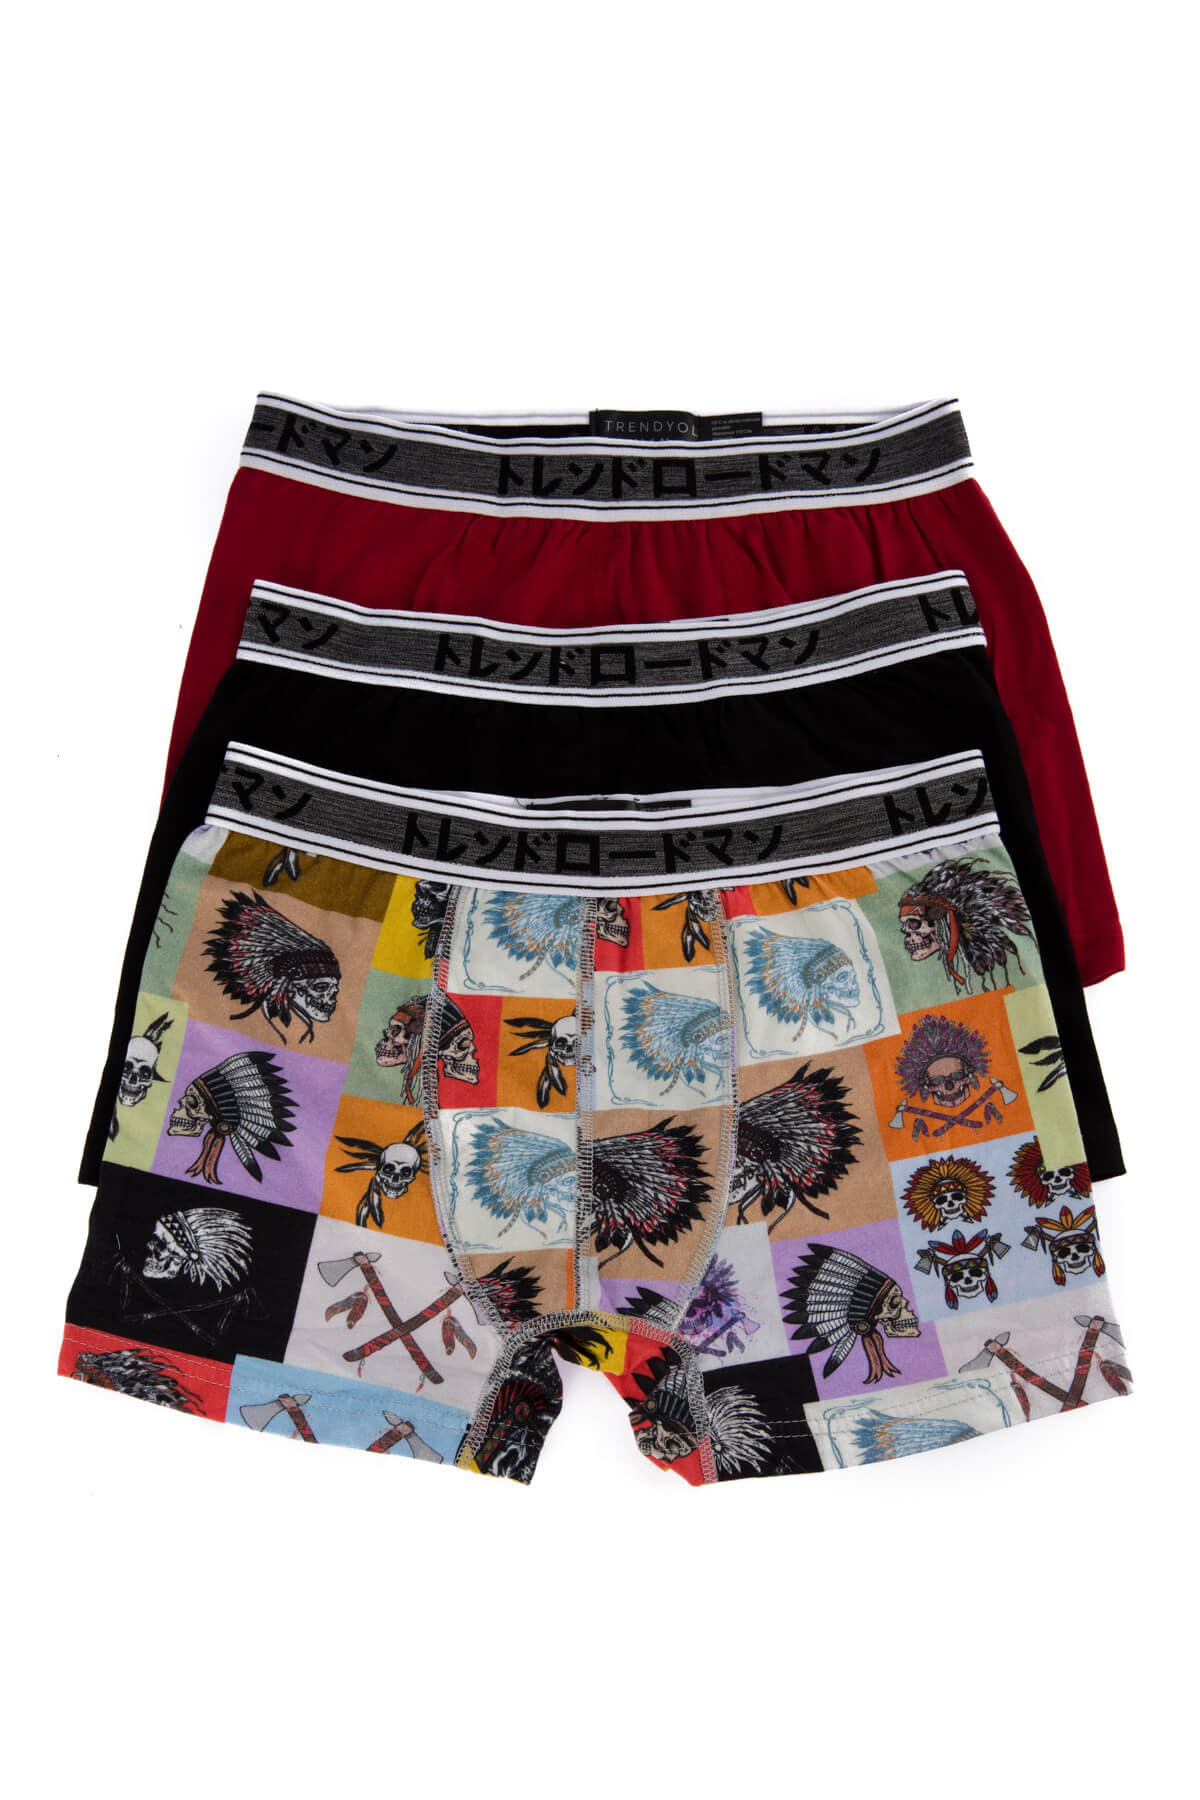 Trendyol Orange Male Boxer-Patterned 3-Mixed Packs